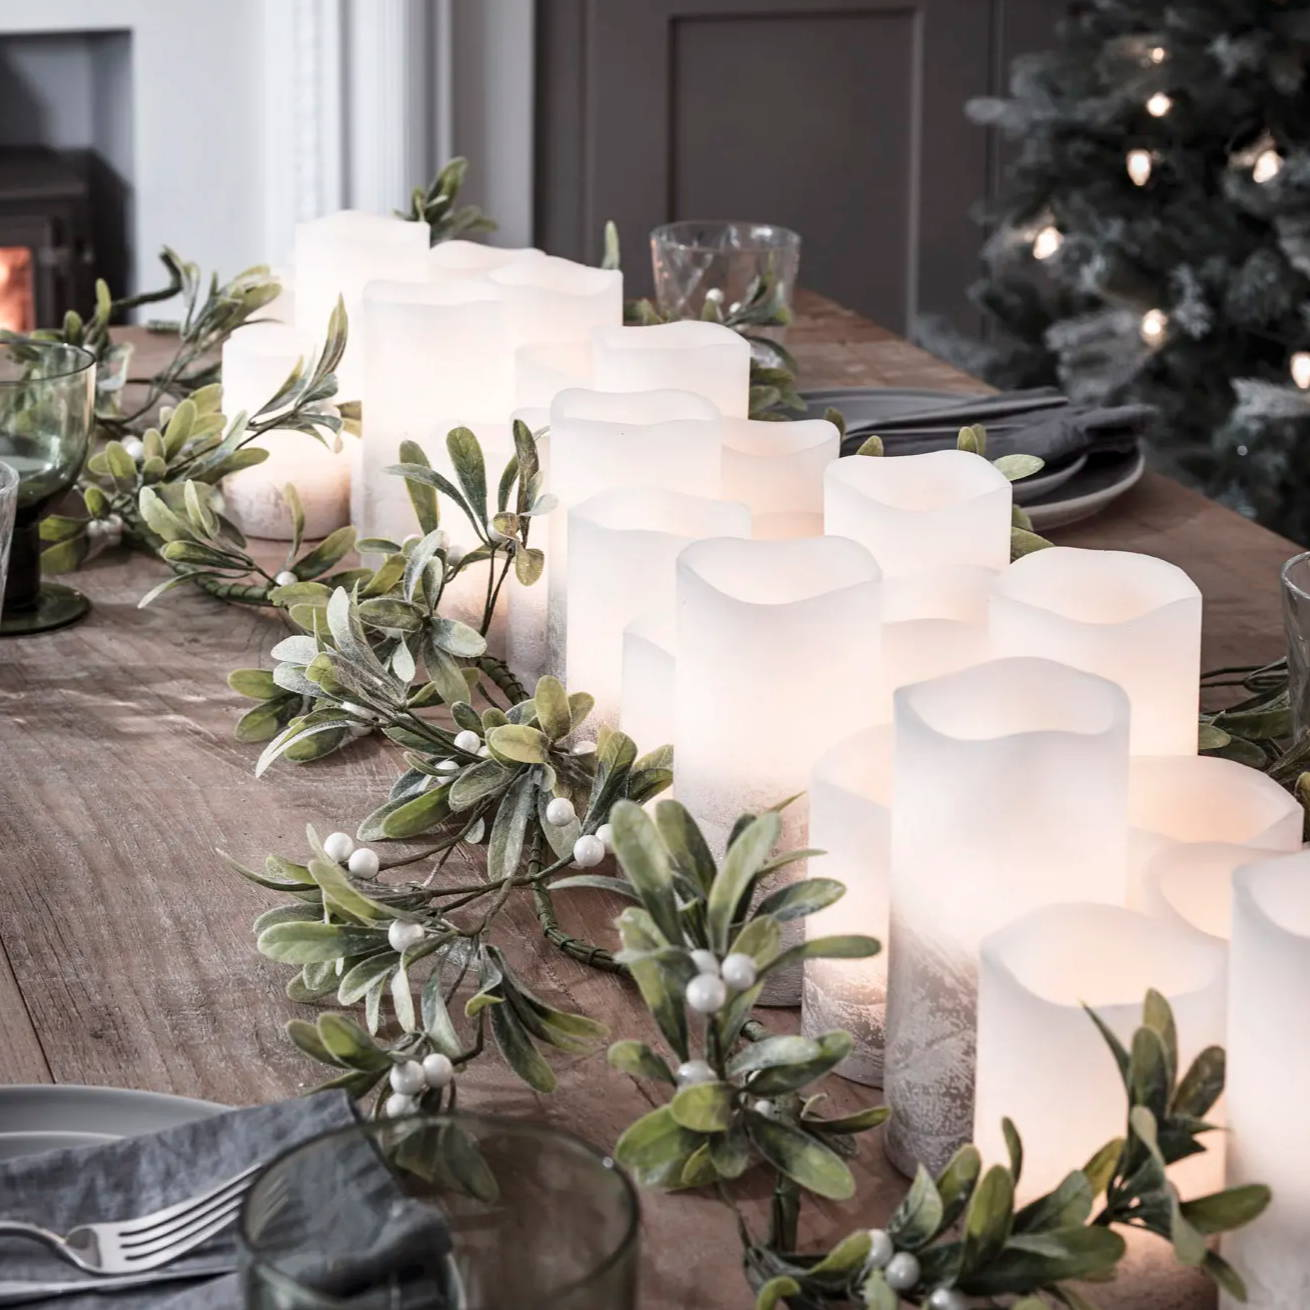 Christmas table setting lined with LED candles and a festive garland